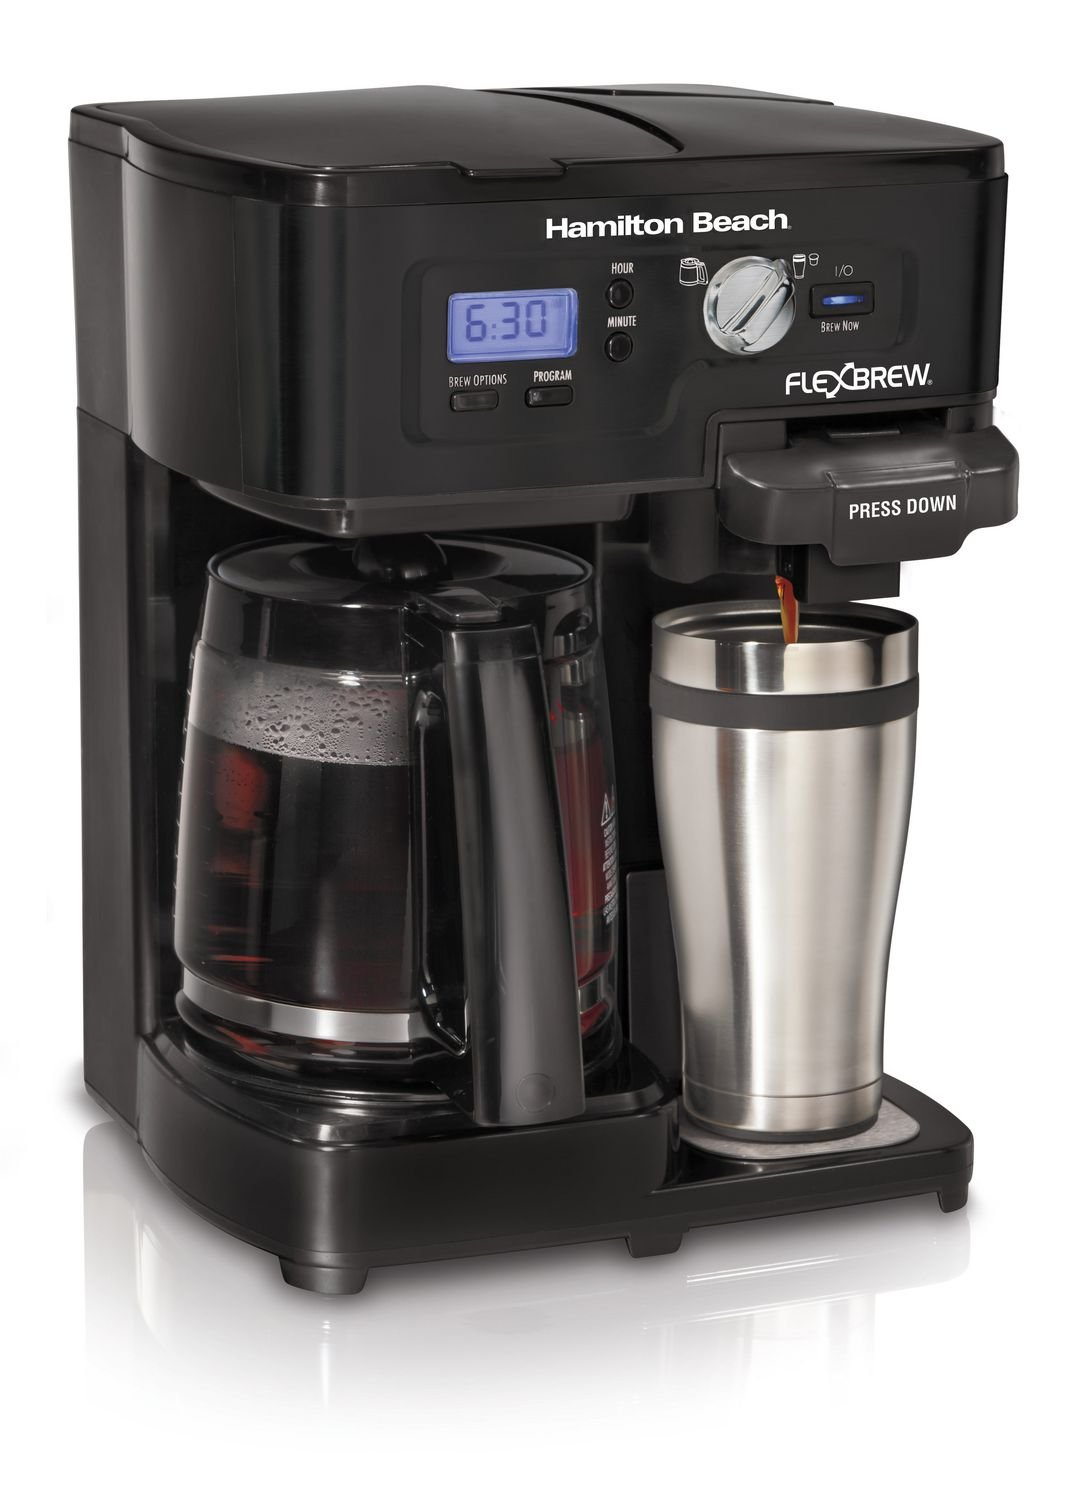 Hamilton Beach 12- Cup 2-way FlexBrew Coffee Maker Black,k-cup pack or brew, Programmable, Single Serve- 49985C